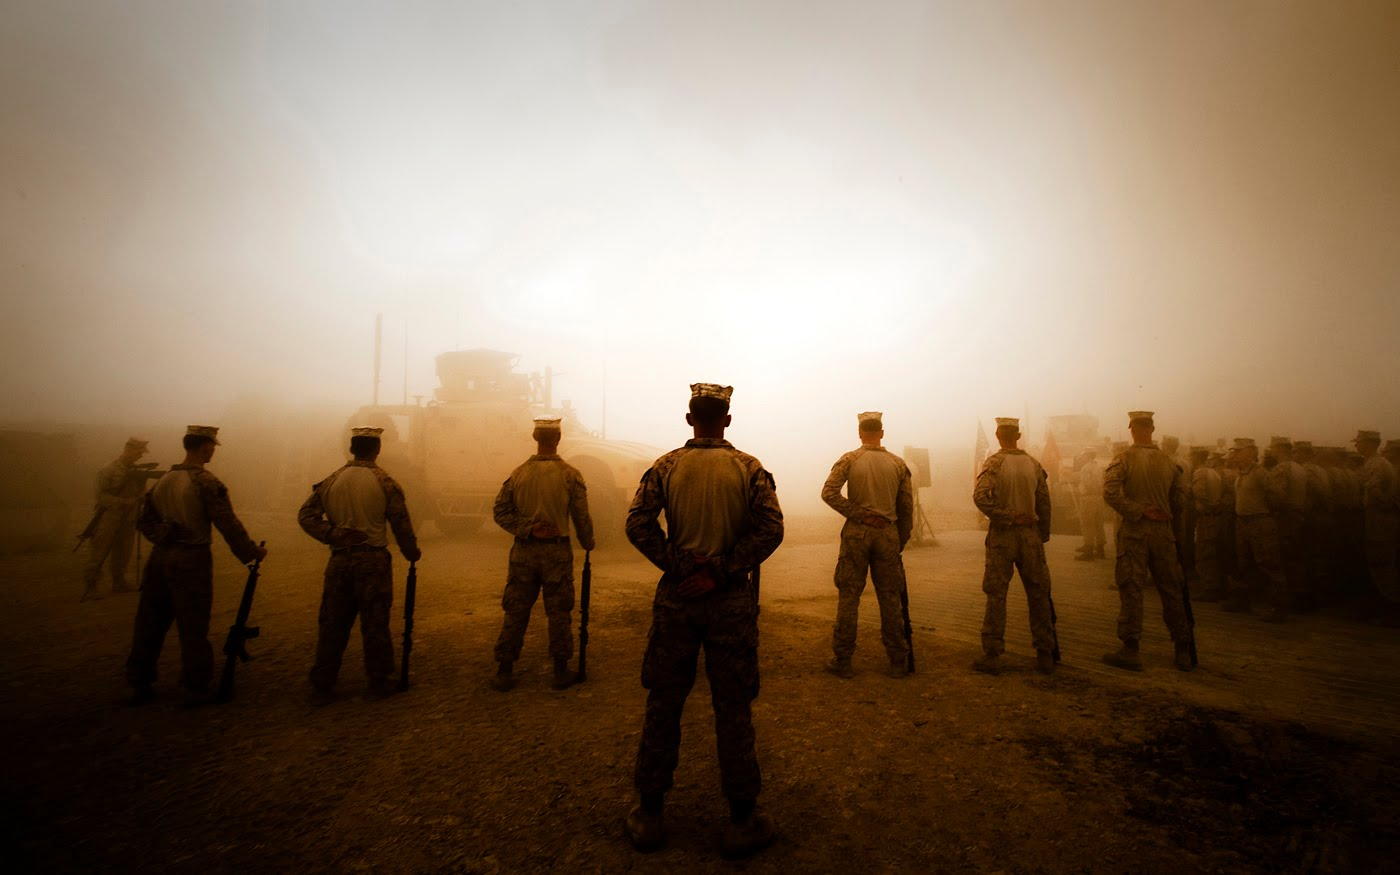 marine corps leadership traits essay Marine corps leadership traits essay this art form has been set aside in nearly all marine corps units after a decade of war even though the principles of close.